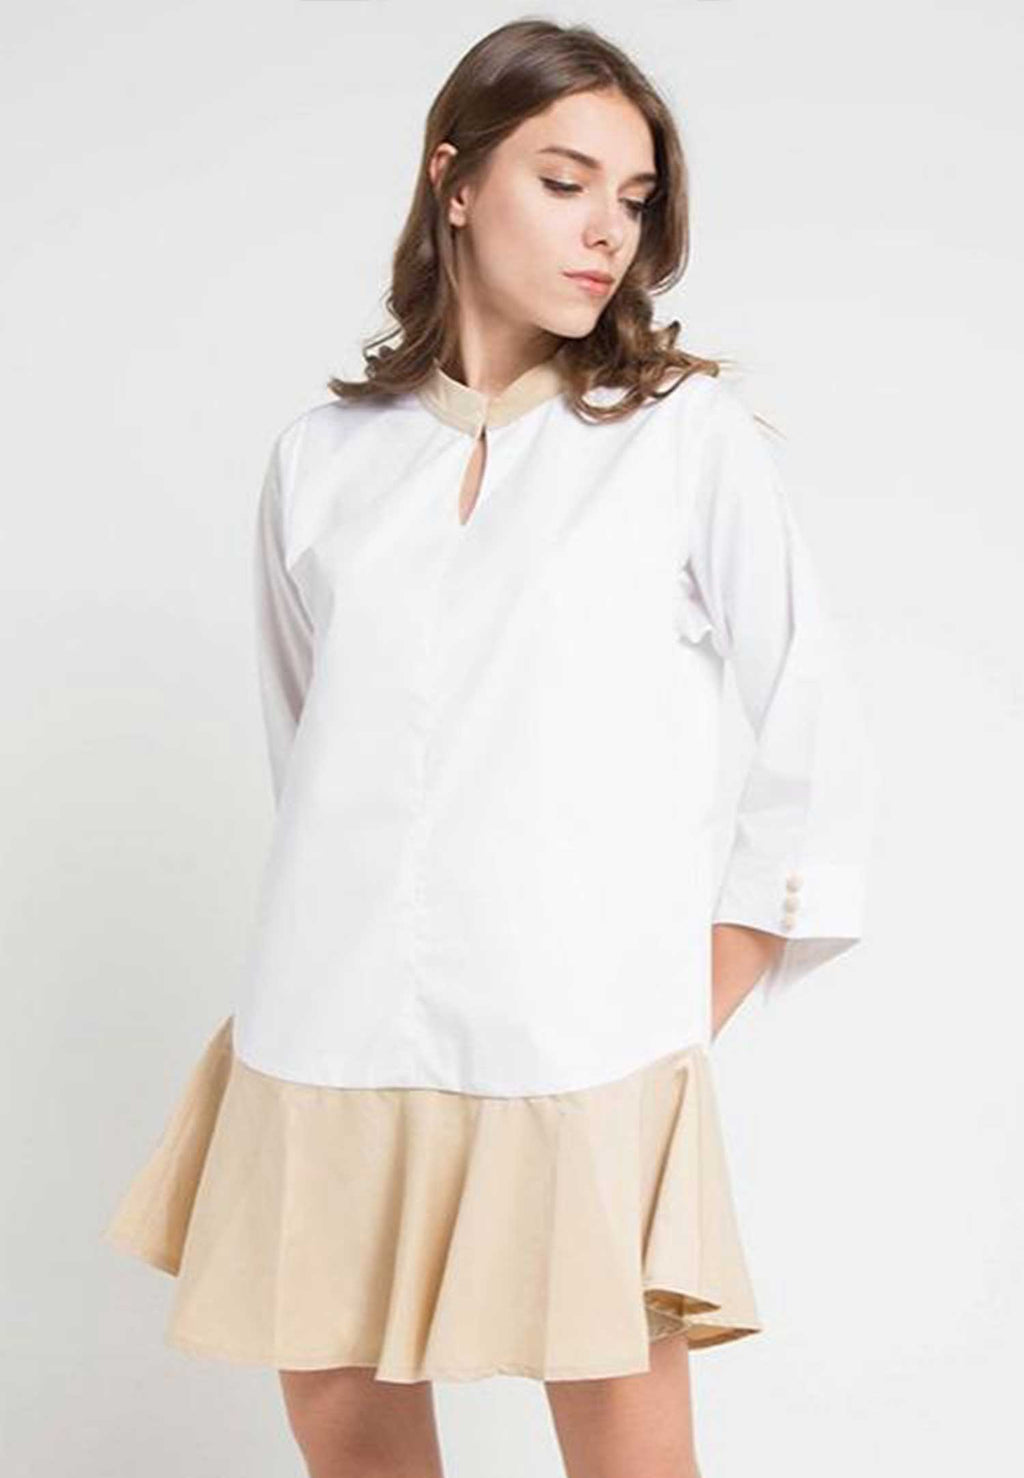 Estelle. Mini Flair Dress - Cream